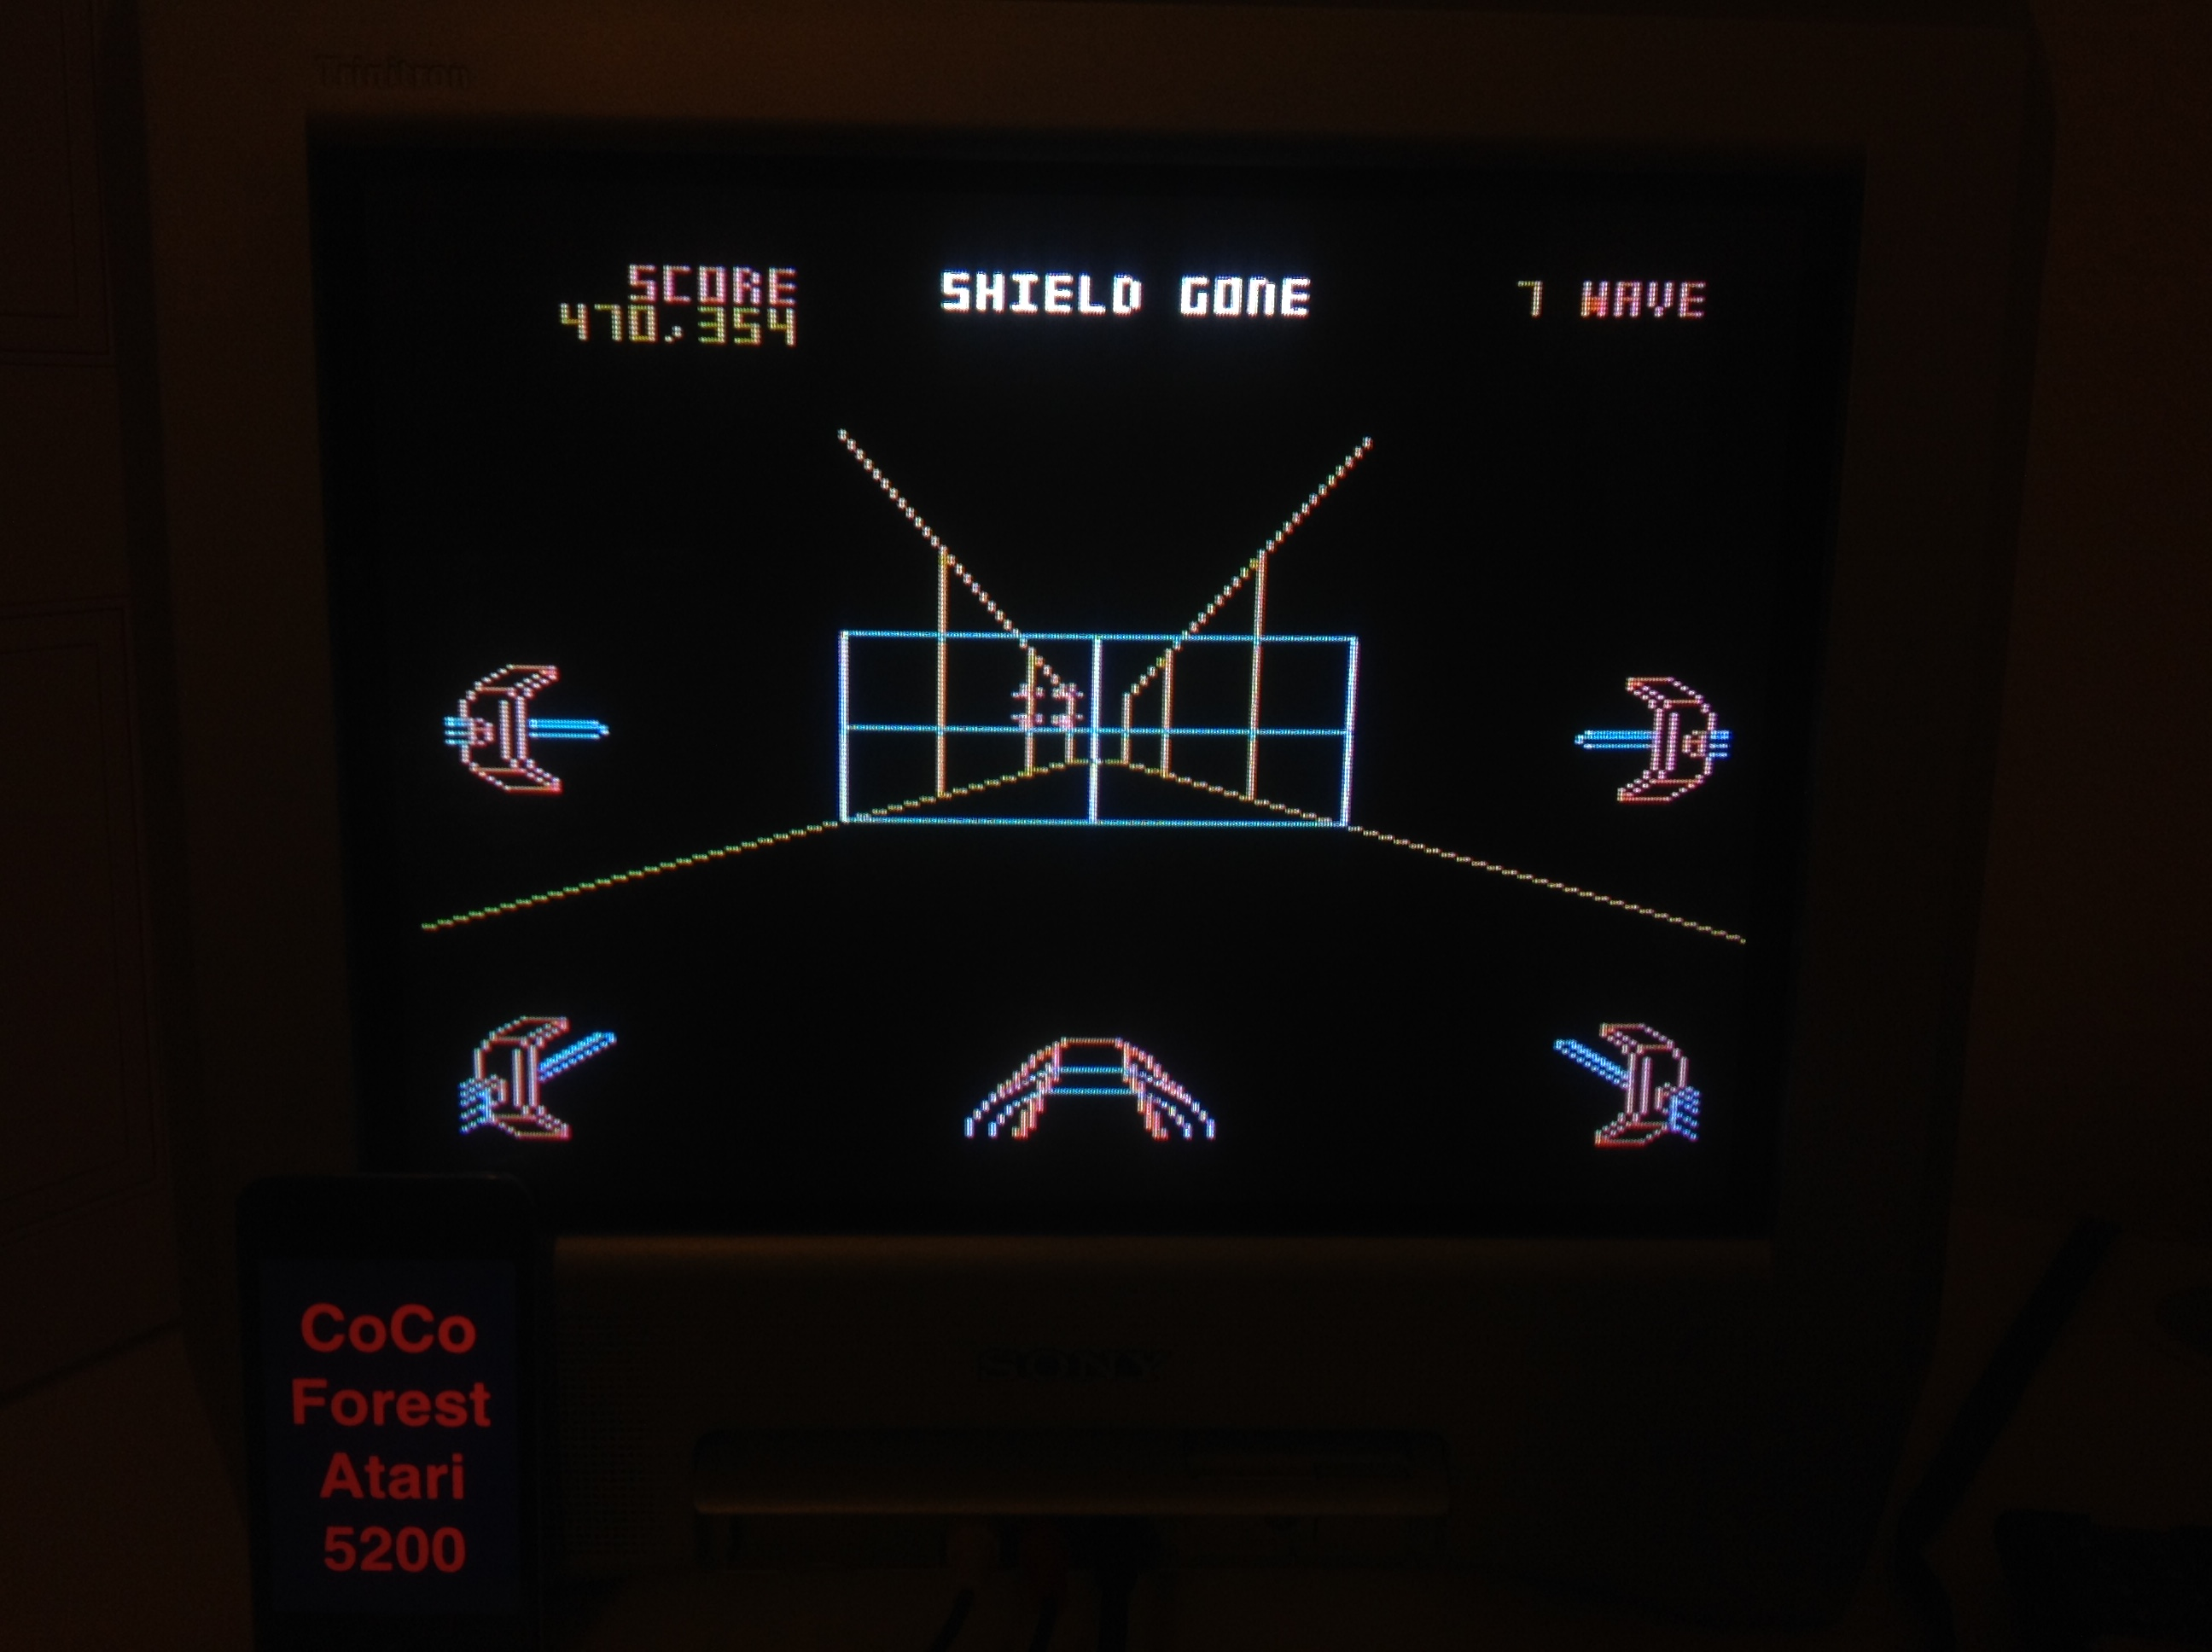 CoCoForest: Star Wars: The Arcade Game [Skill 1] (Atari 5200) 470,354 points on 2015-11-18 11:17:19